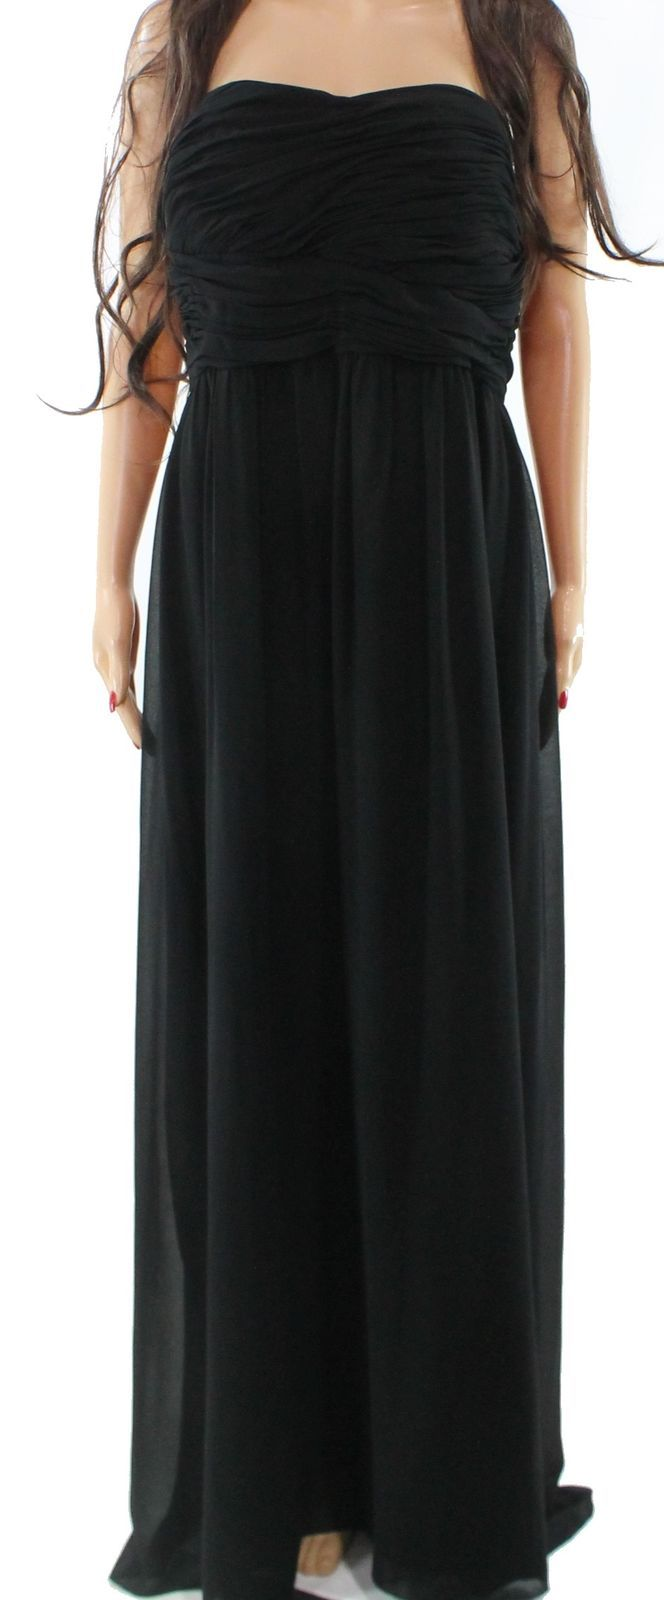 Cool Awesome Donna Morgan Black Women's Size 22W Plus Strapless Empire Waist Dress $298- #564 2017/2018